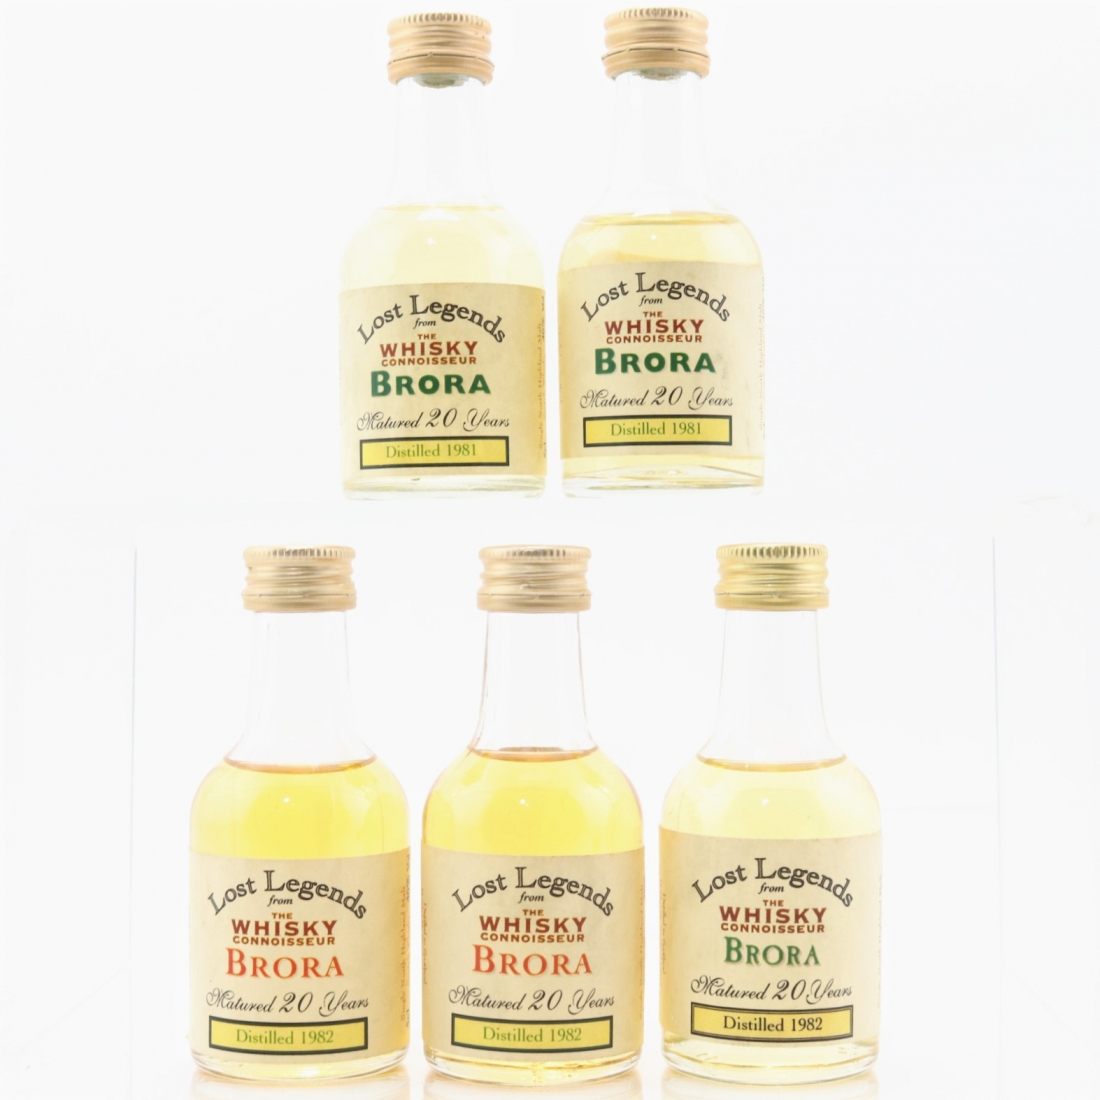 Brora1981/1982 Whisky Connoisseur20 Year Old Miniatures 5 x 5cl